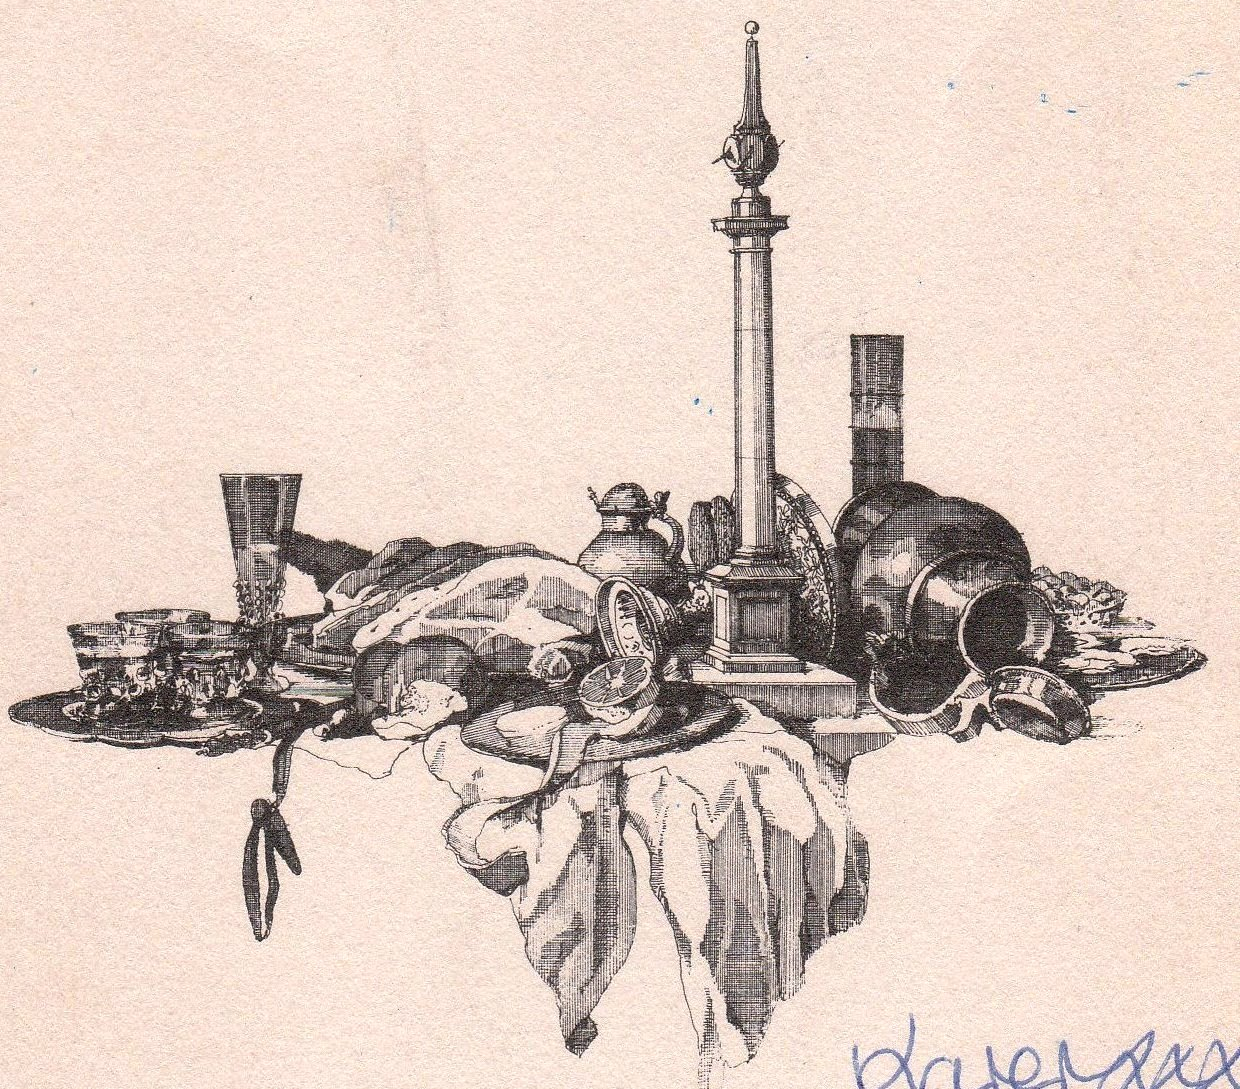 Foundation Dinner Card, drawn by trustee Paul Draper.